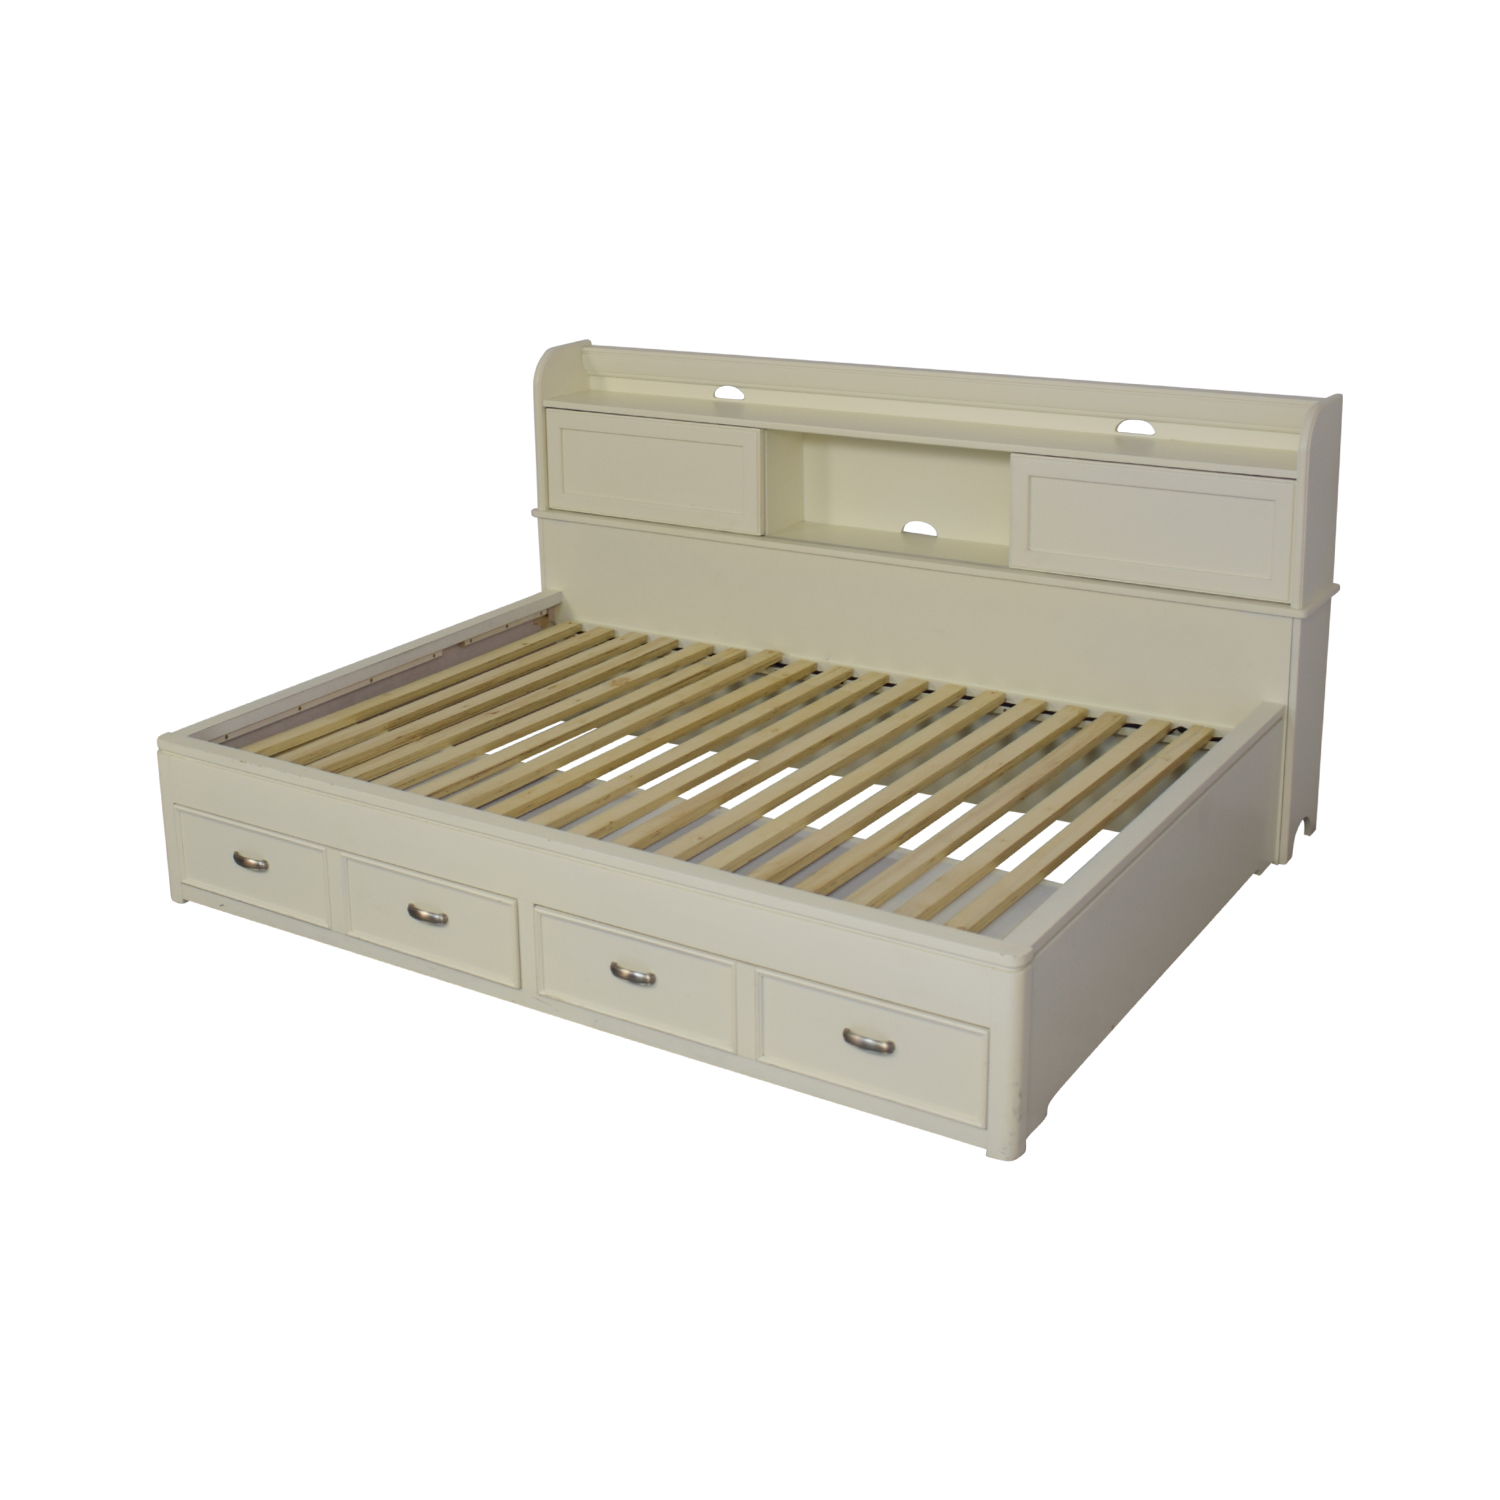 Legacy Classic Furniture Legacy Classic Kids Jeyden Full Storage Bed nyc